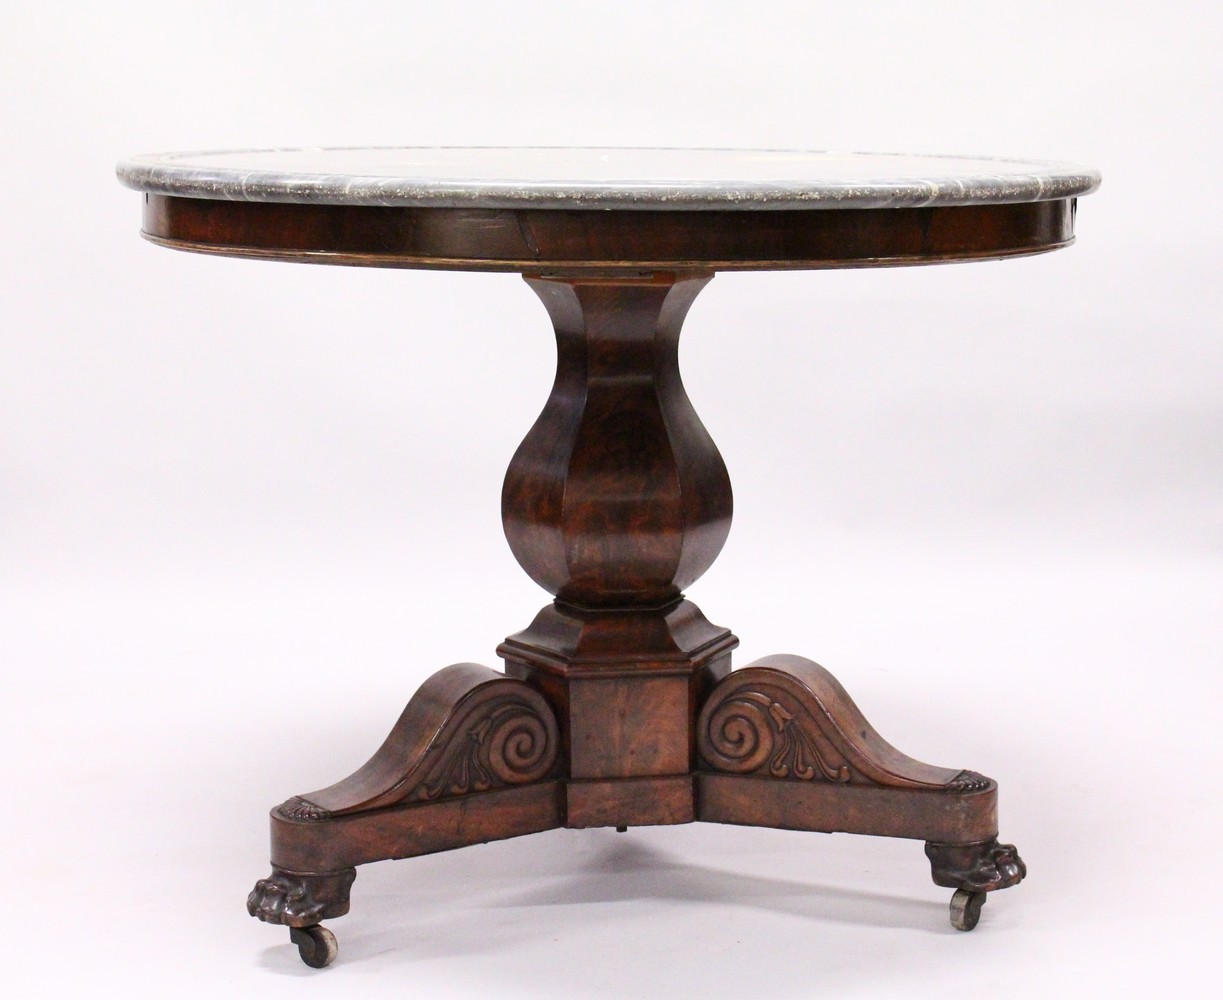 A 19TH CENTURY ROSEWOOD AND GREY MARBLE CIRCULAR CENTRE TABLE, with veined grey marble top, plain